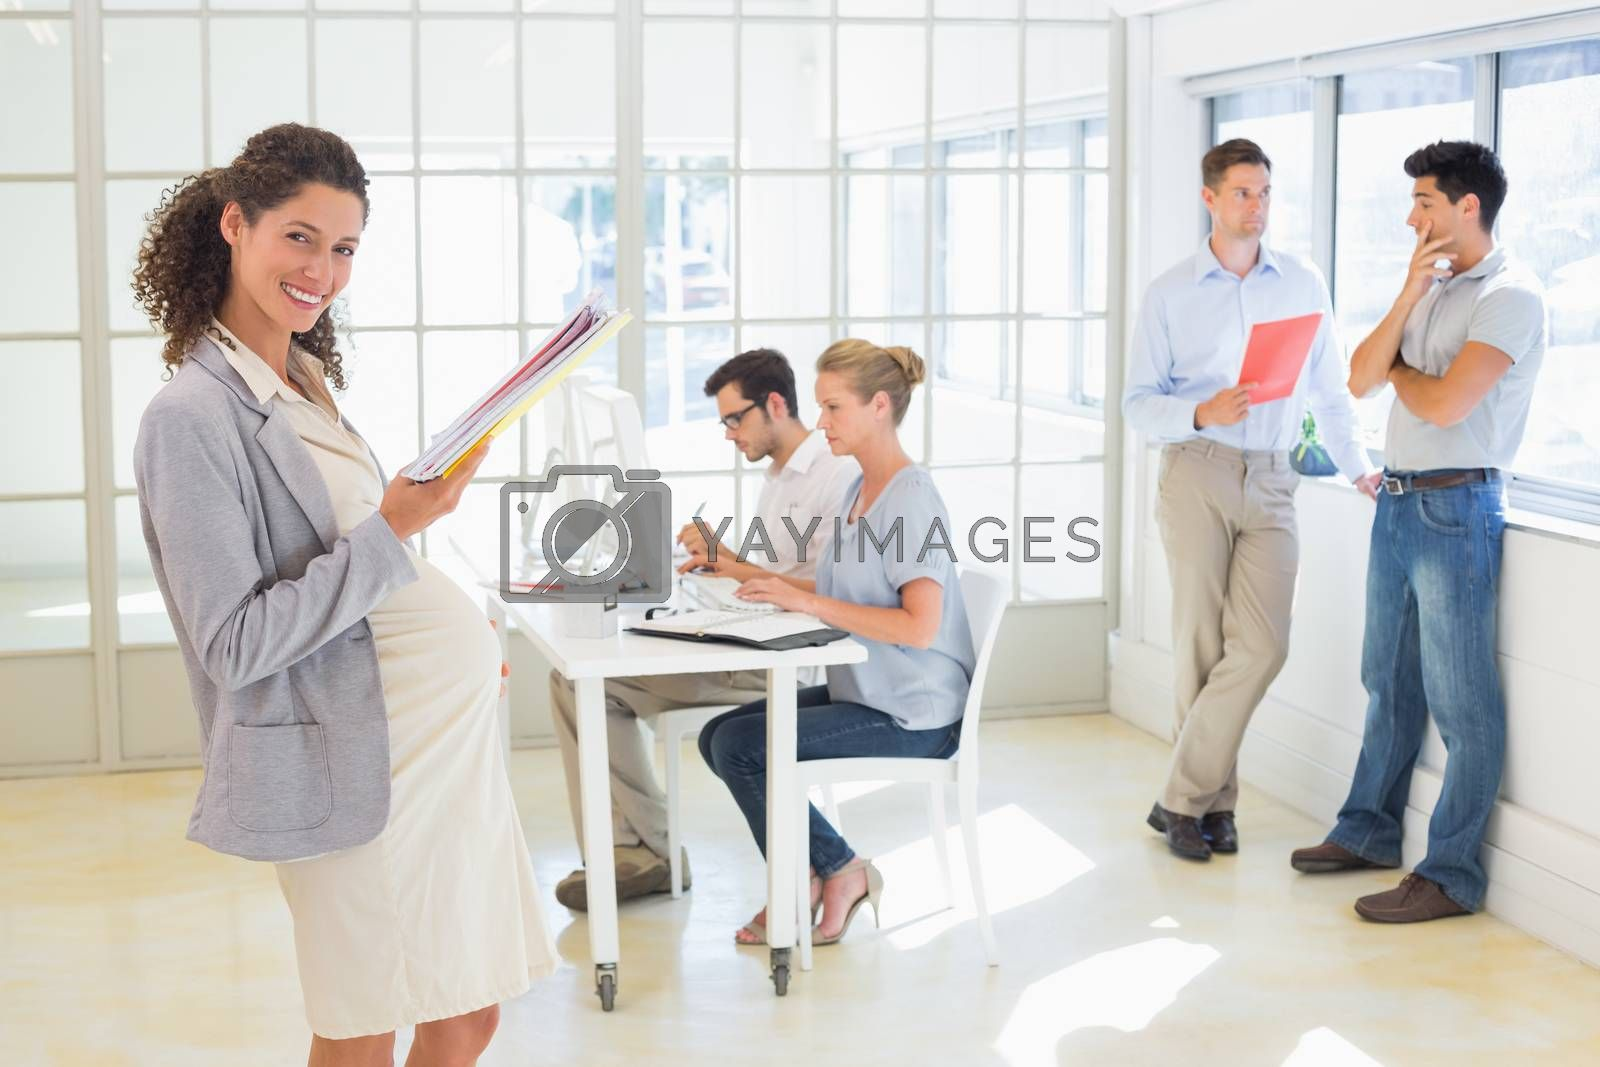 Royalty free image of Pregnant businesswoman smiling at camera with team behind her by Wavebreakmedia